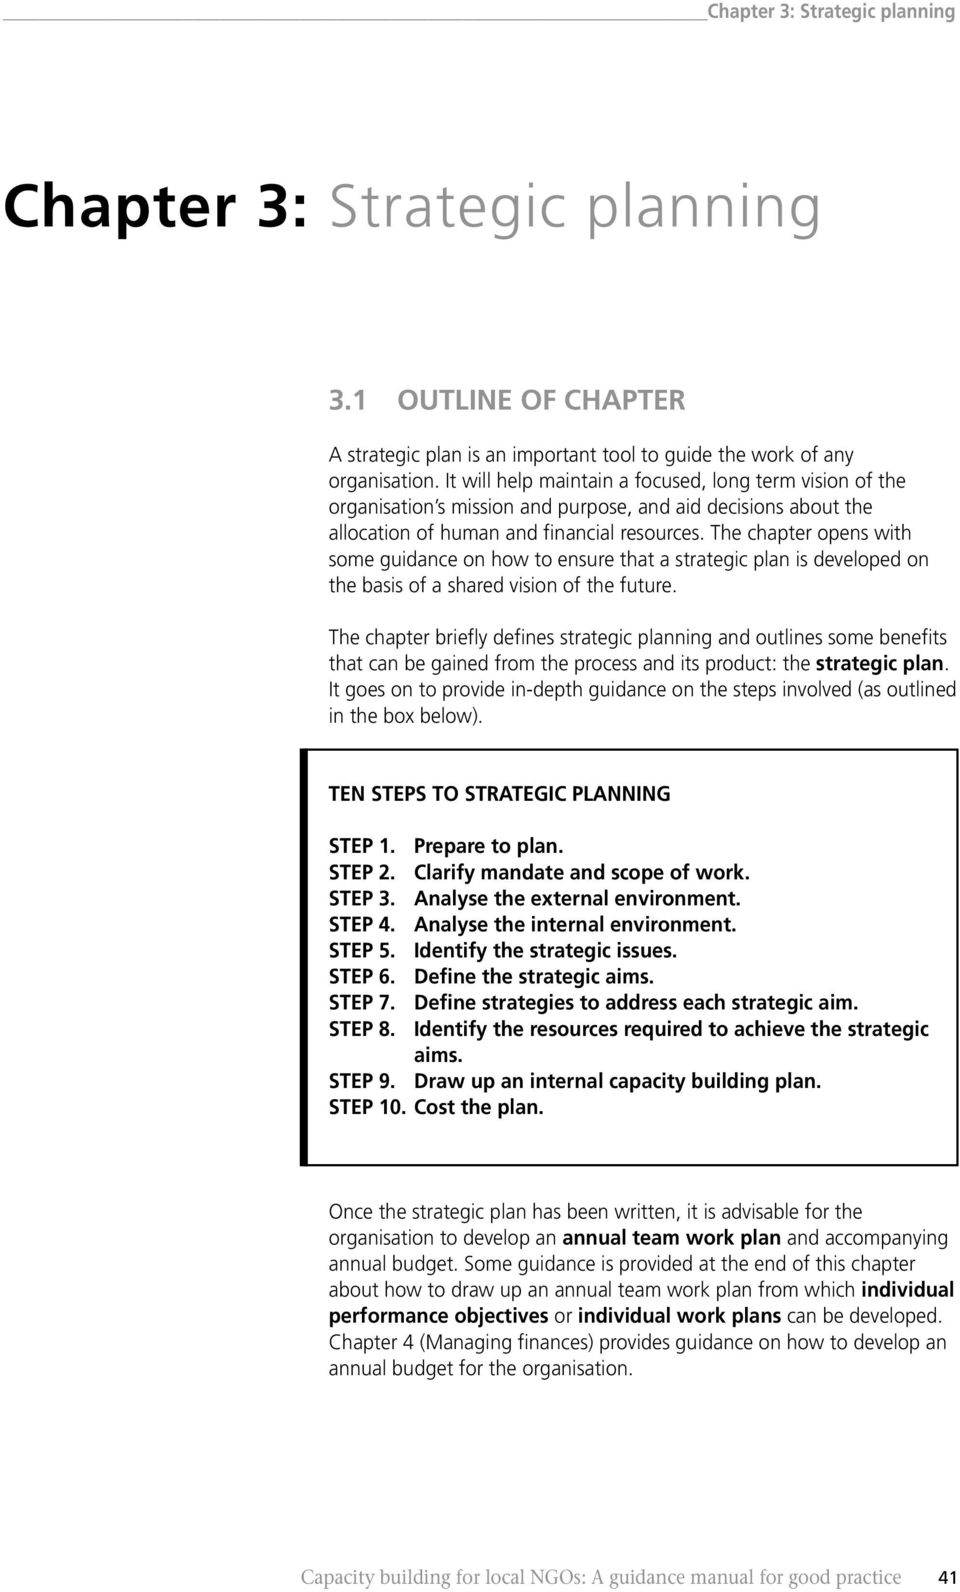 The chapter opens with some guidance on how to ensure that a strategic plan is developed on the basis of a shared vision of the future.